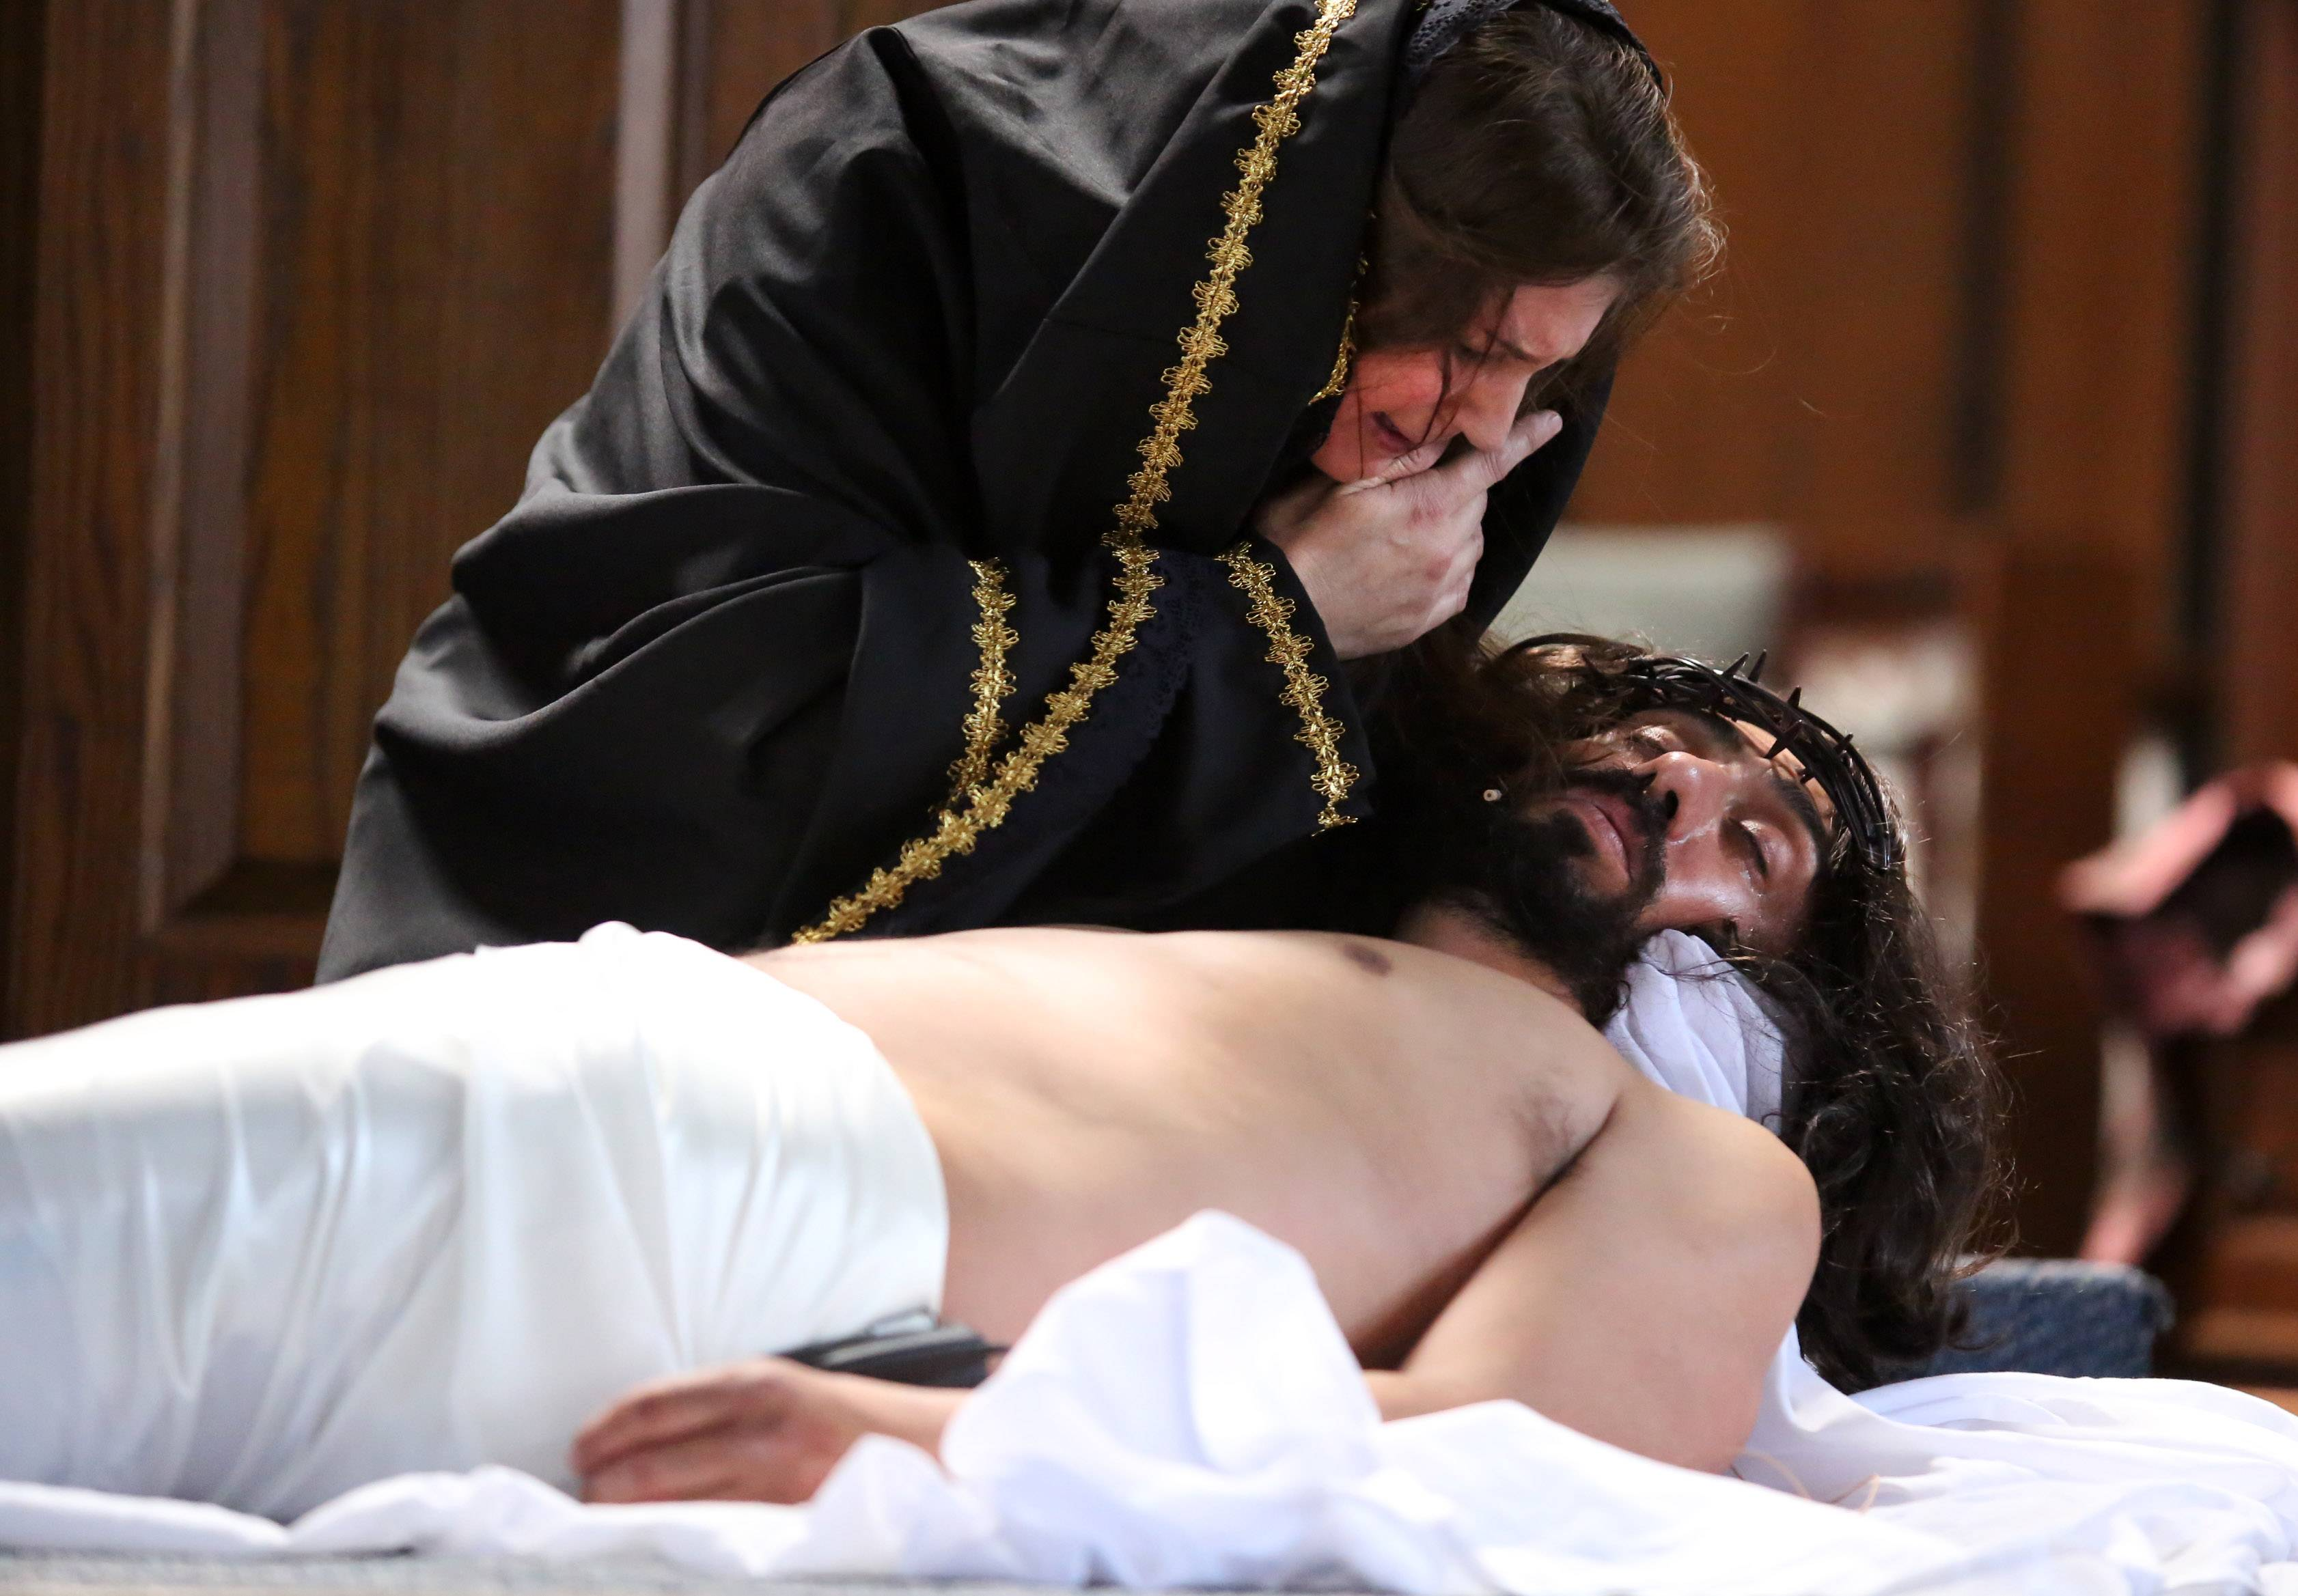 Mary, played by Mayela Correa, cries over her son, Jesus, portrayed by Miguel Angel Correa, after he is removed from the cross during a drama at Santa Maria del Popolo Catholic Church in Mundelein on Good Friday. It was the second consecutive year the husband and wife from Mundelein were in Via Crucis.